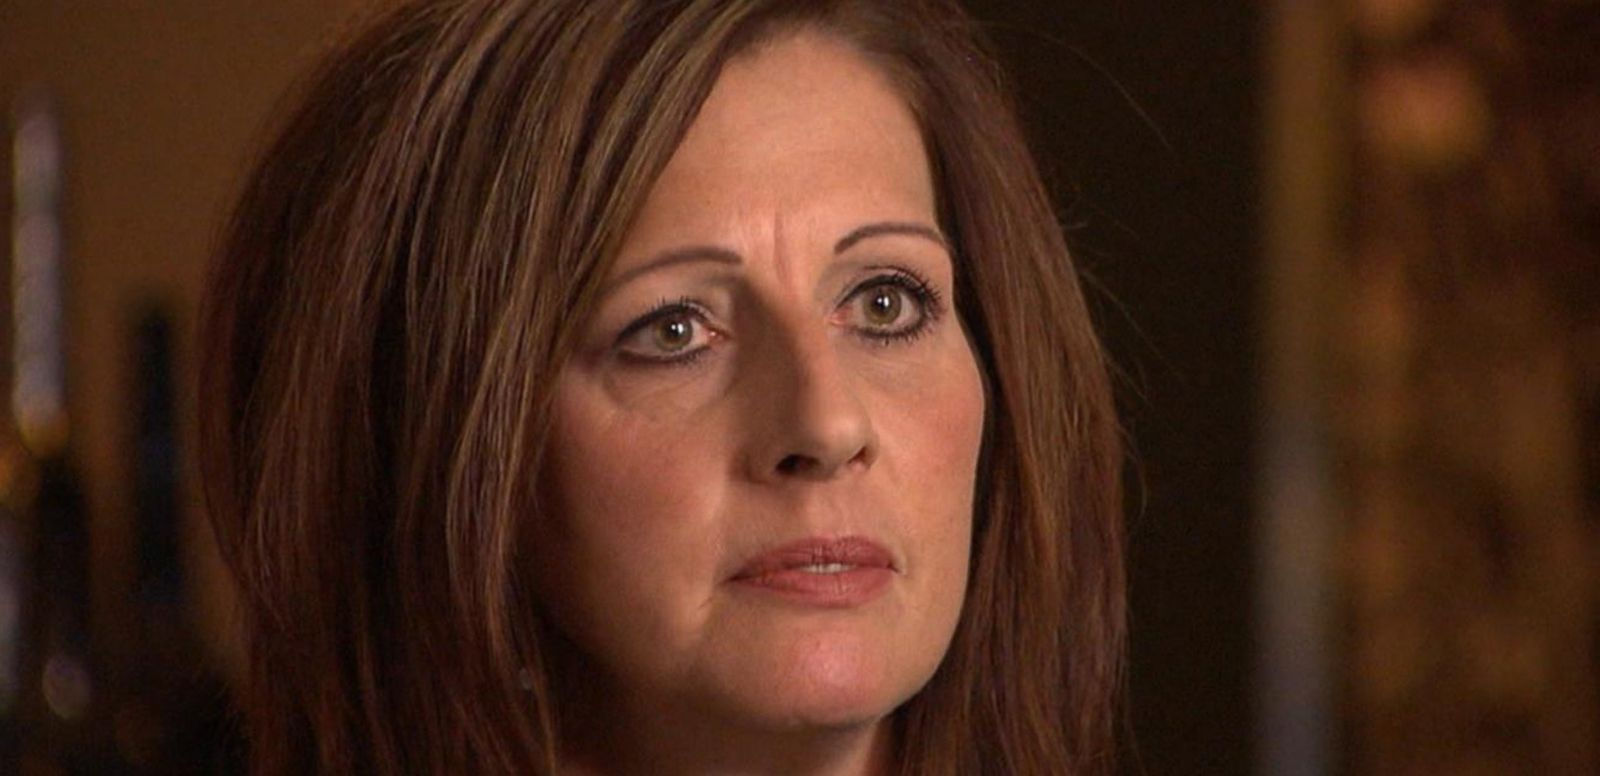 VIDEO: Missing Woman's Family Takes Matters Into Their Own Hands: Part 4